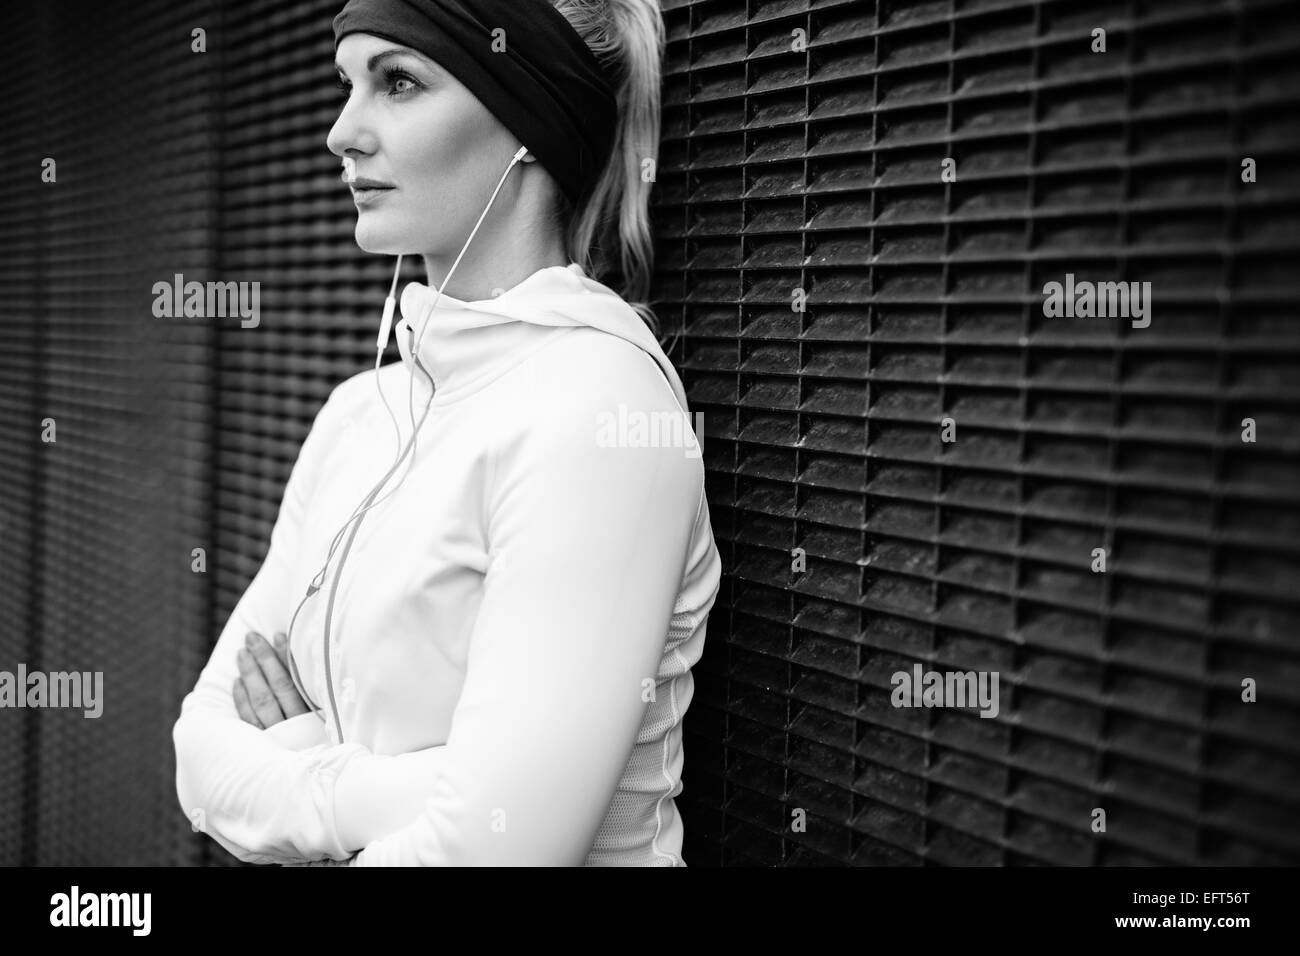 Black and white image of young woman wearing earphones standing leaning a wall looking away confidently. Fitness - Stock Image